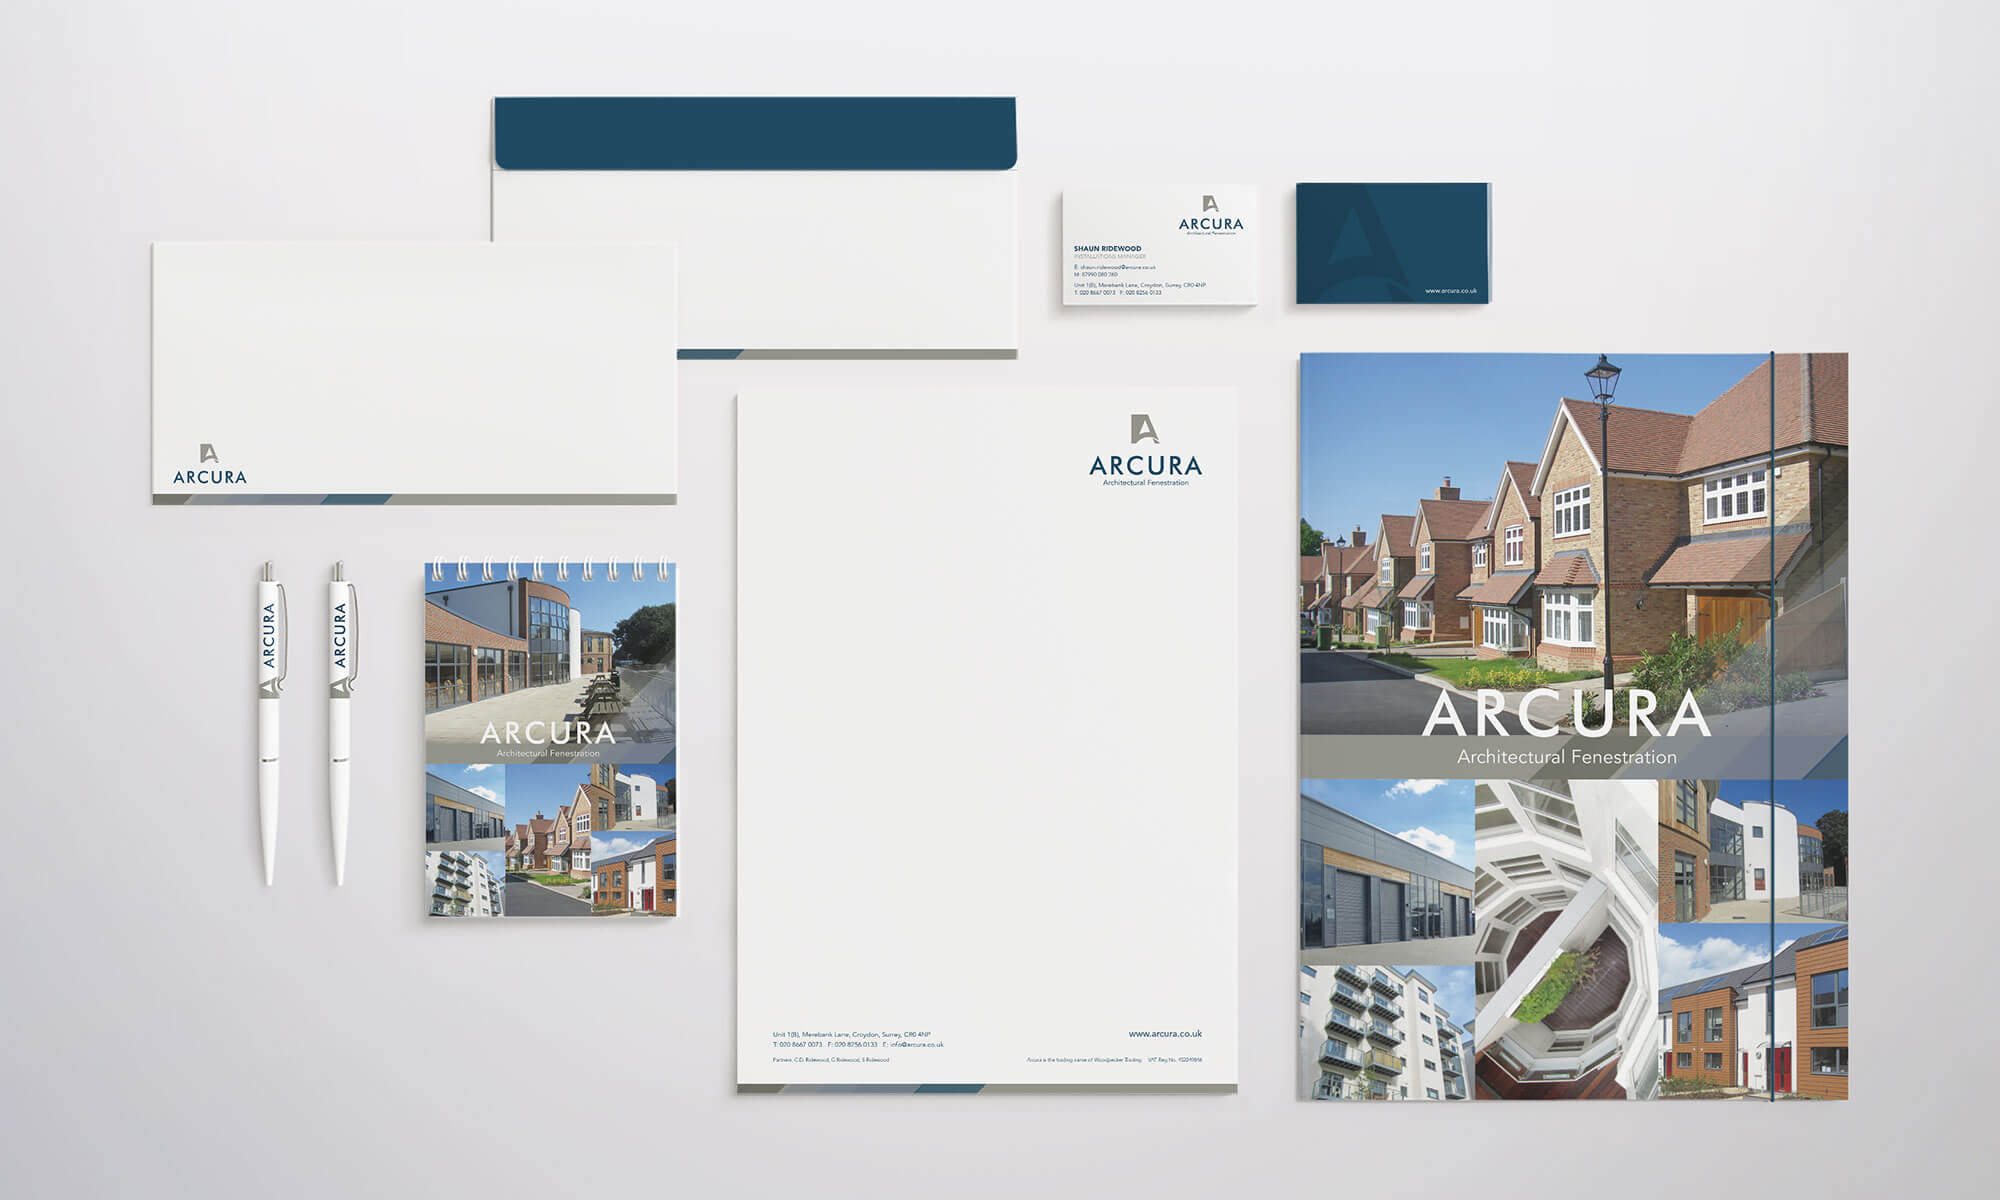 Arcura Stationery Design Concepts